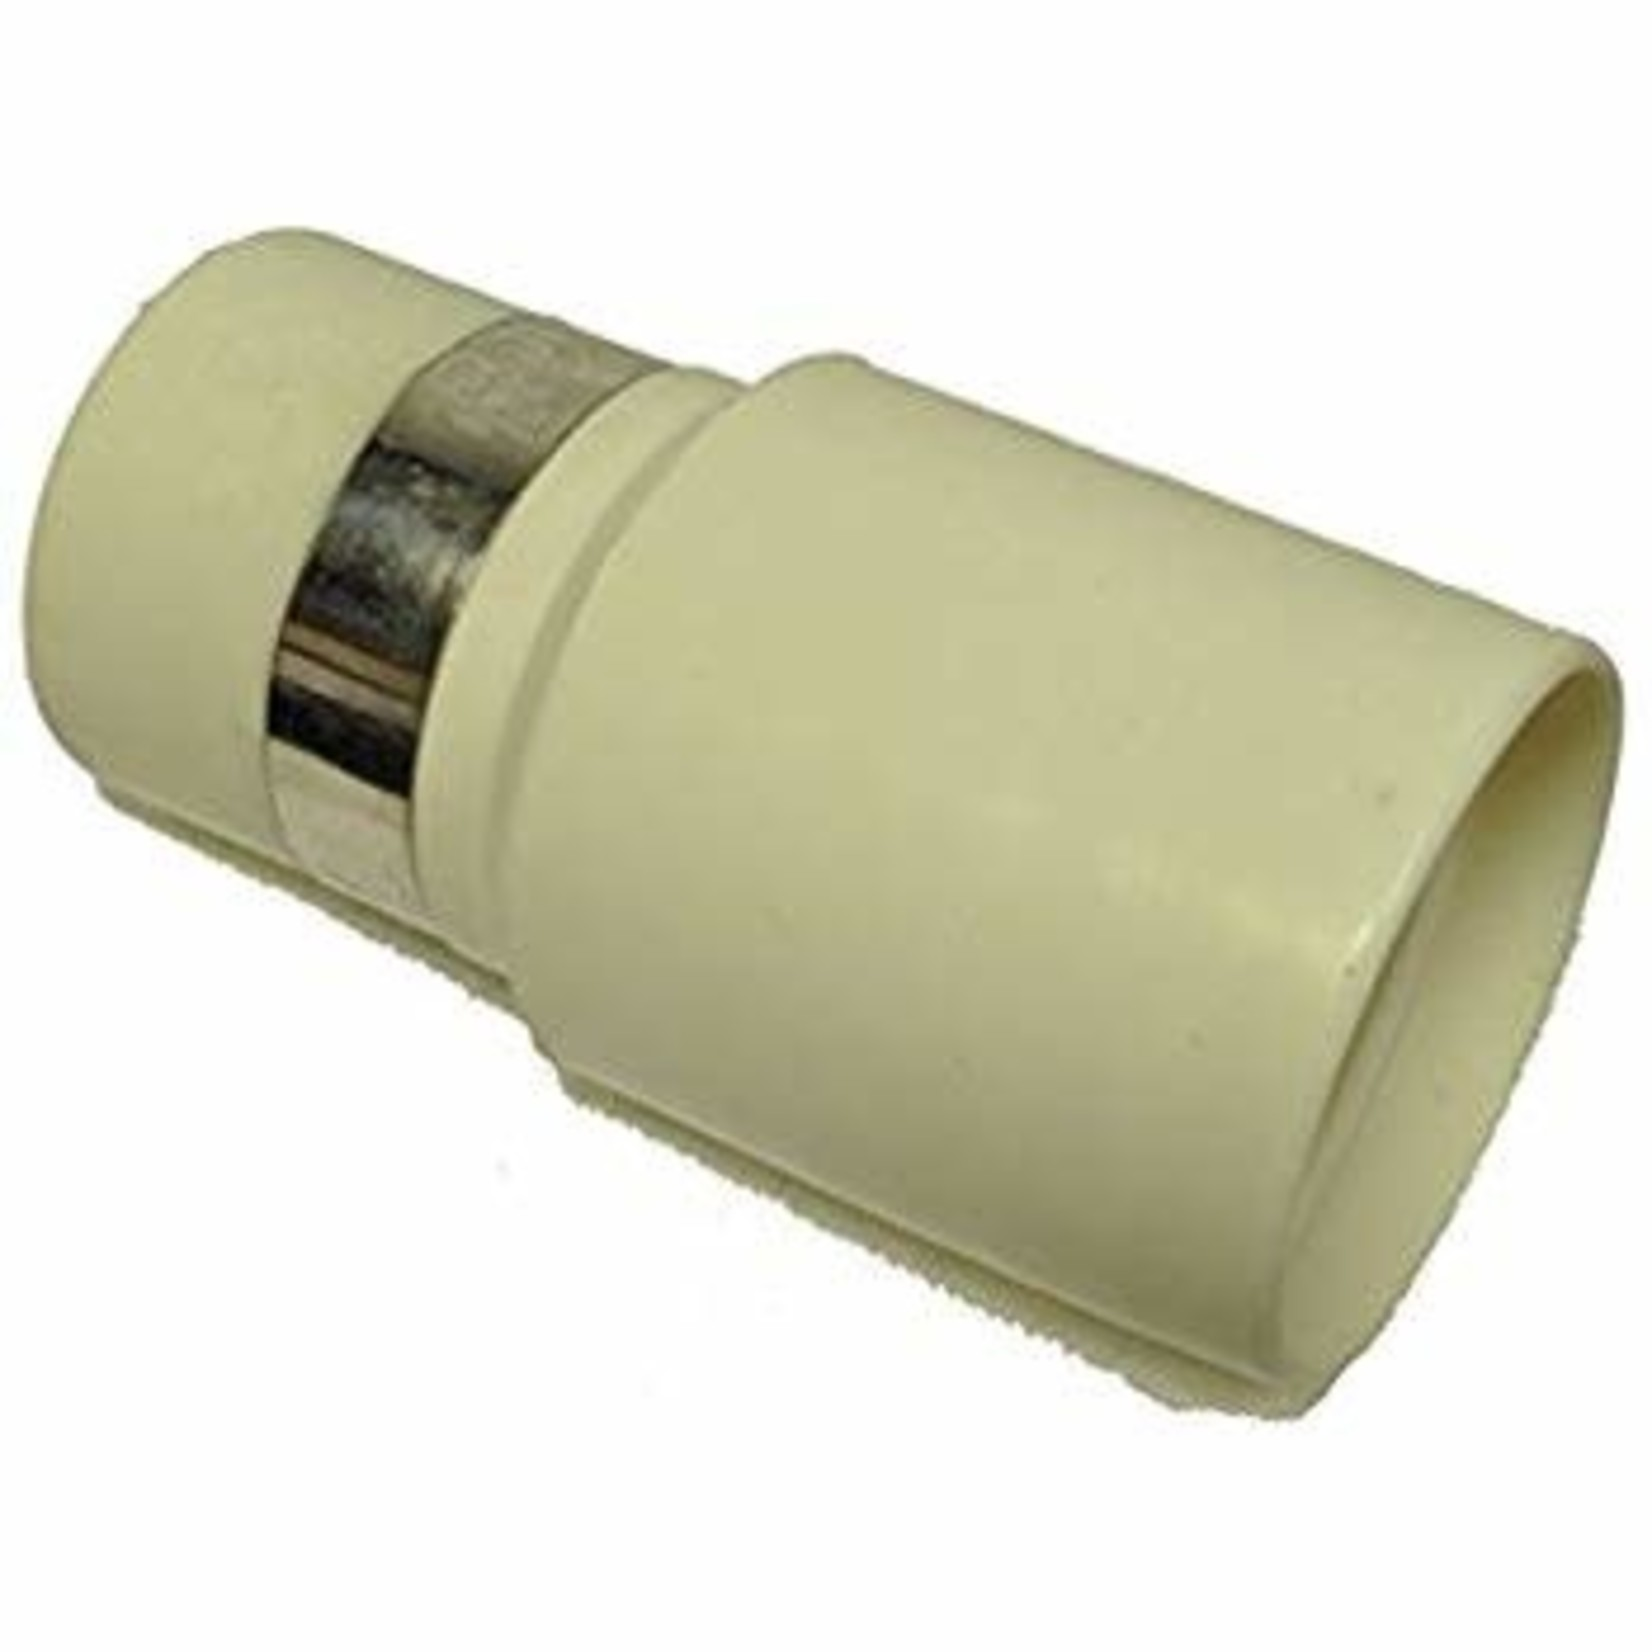 "BEAM Beam 1-3/8"" Hose End w/Ring - Beige"